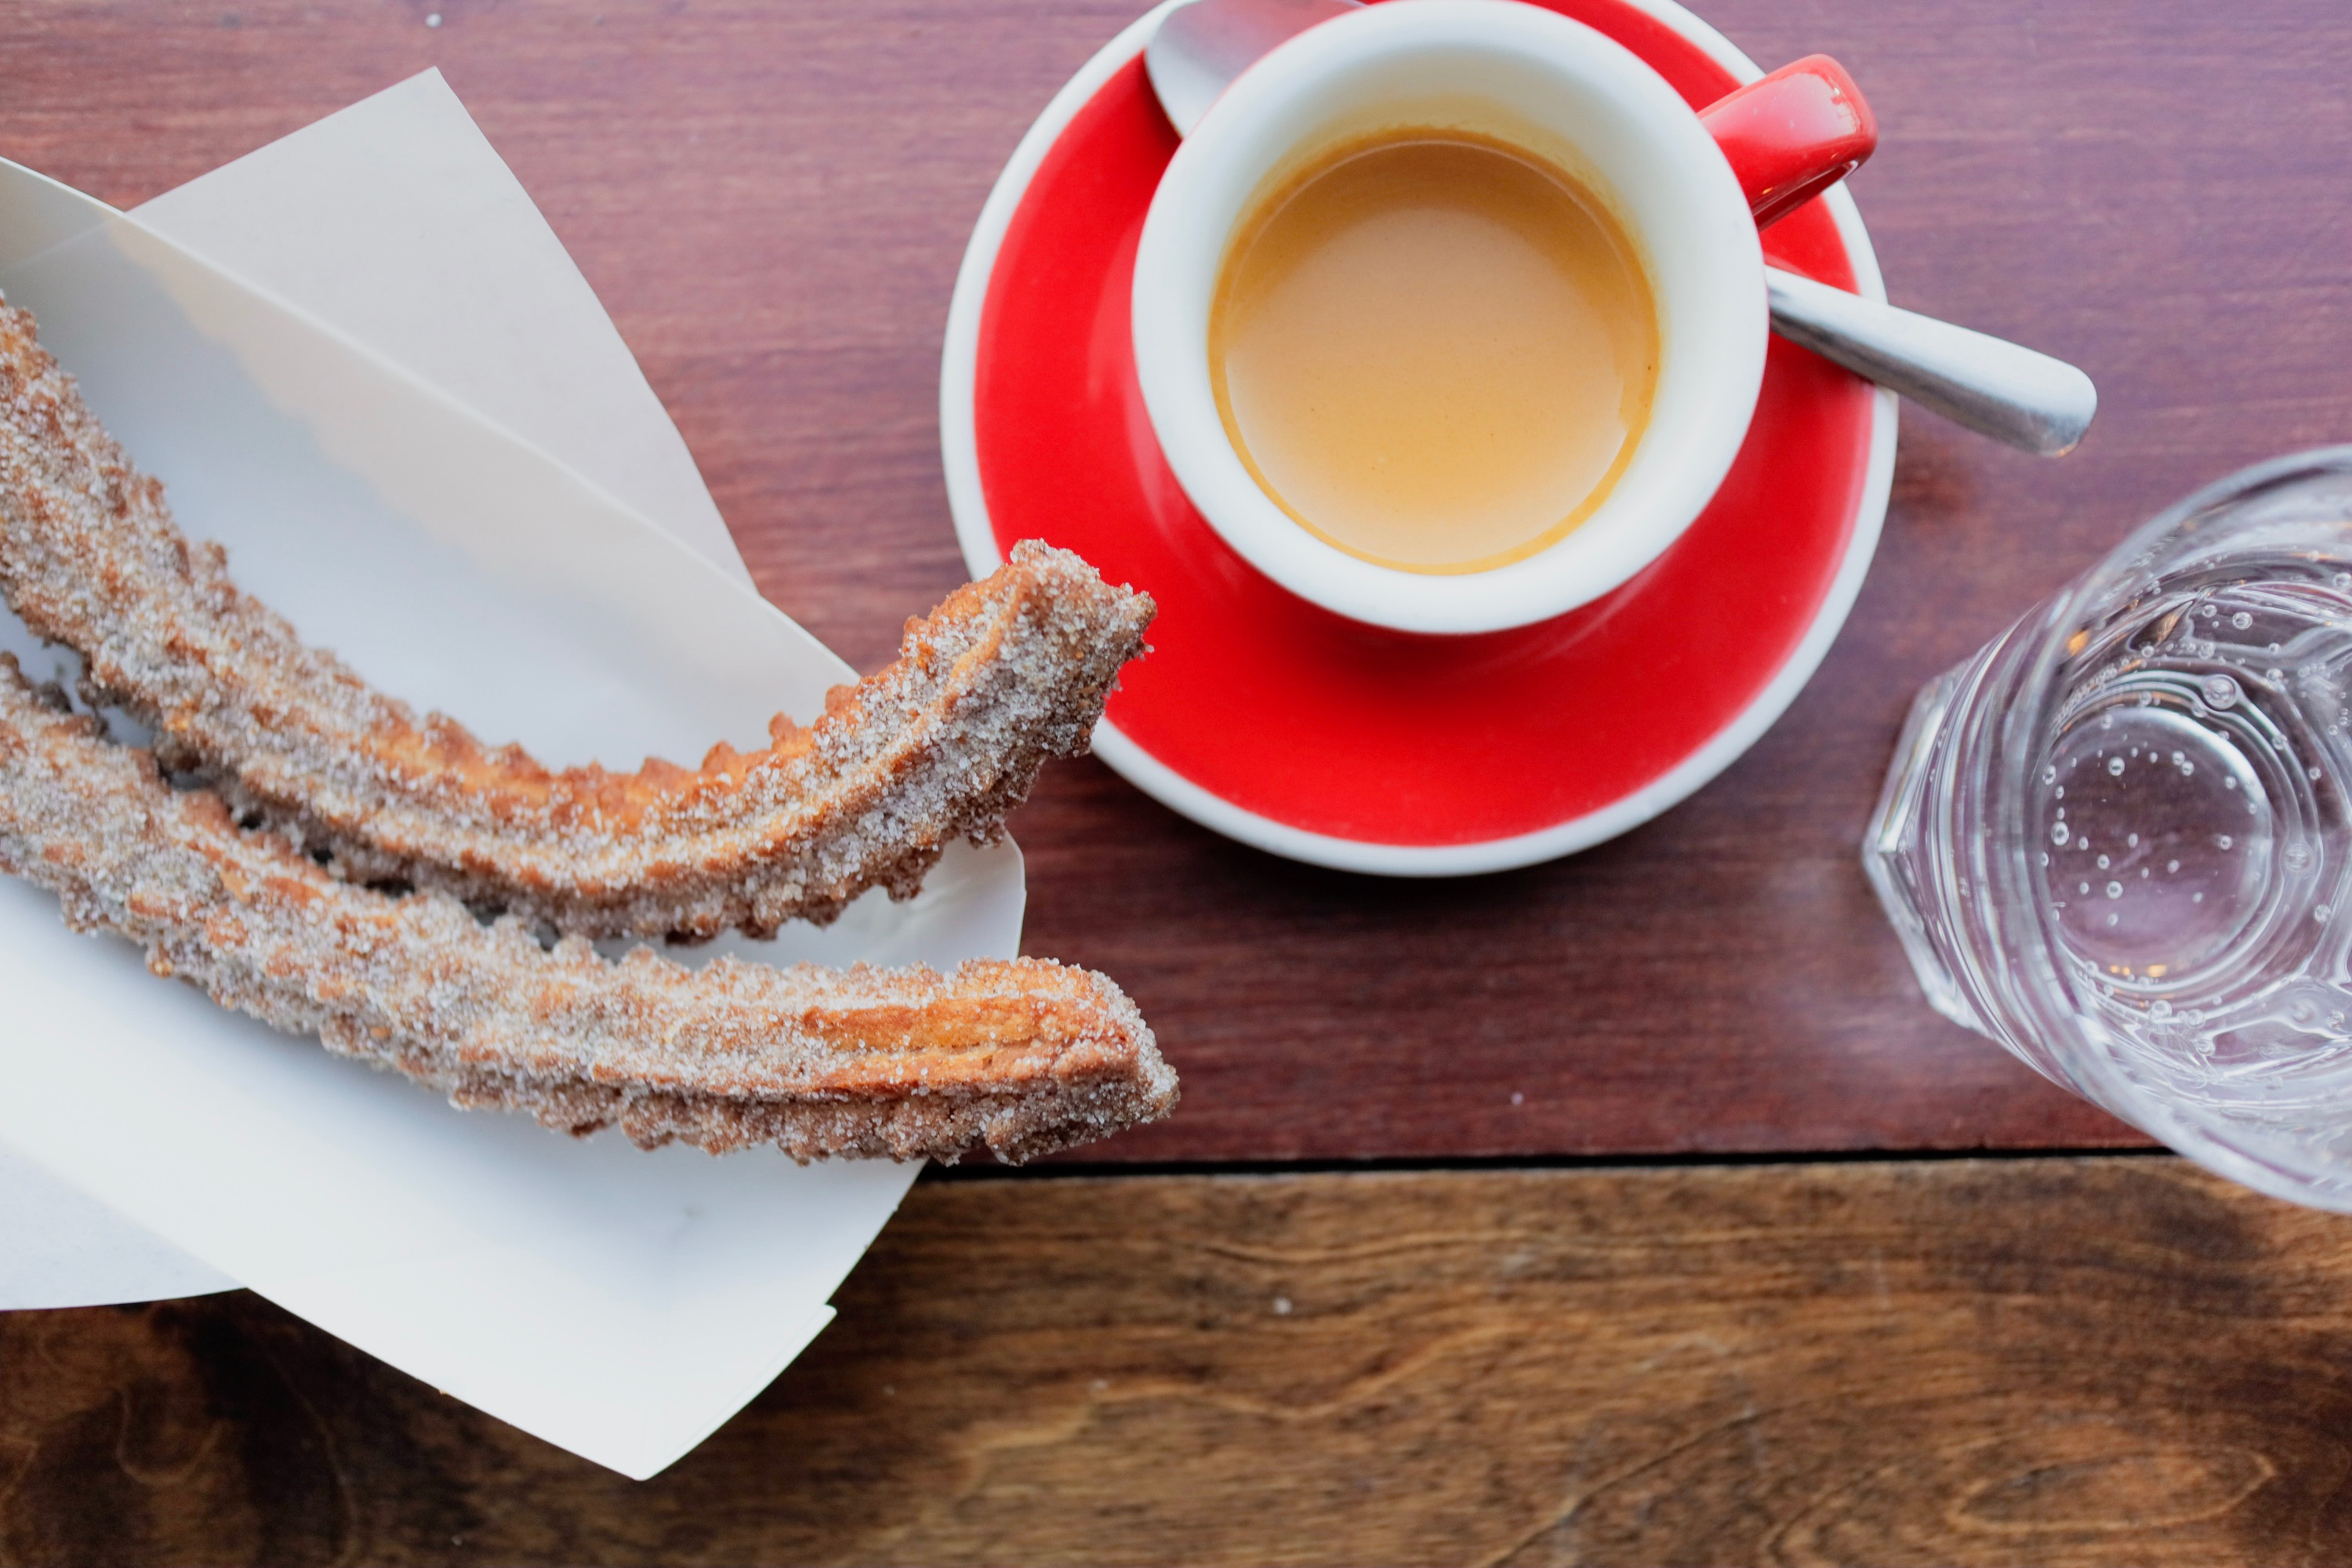 Two churros on a white tray next to a coffee in a mug on top of a red saucer next to a glass of water, all on a wooden table